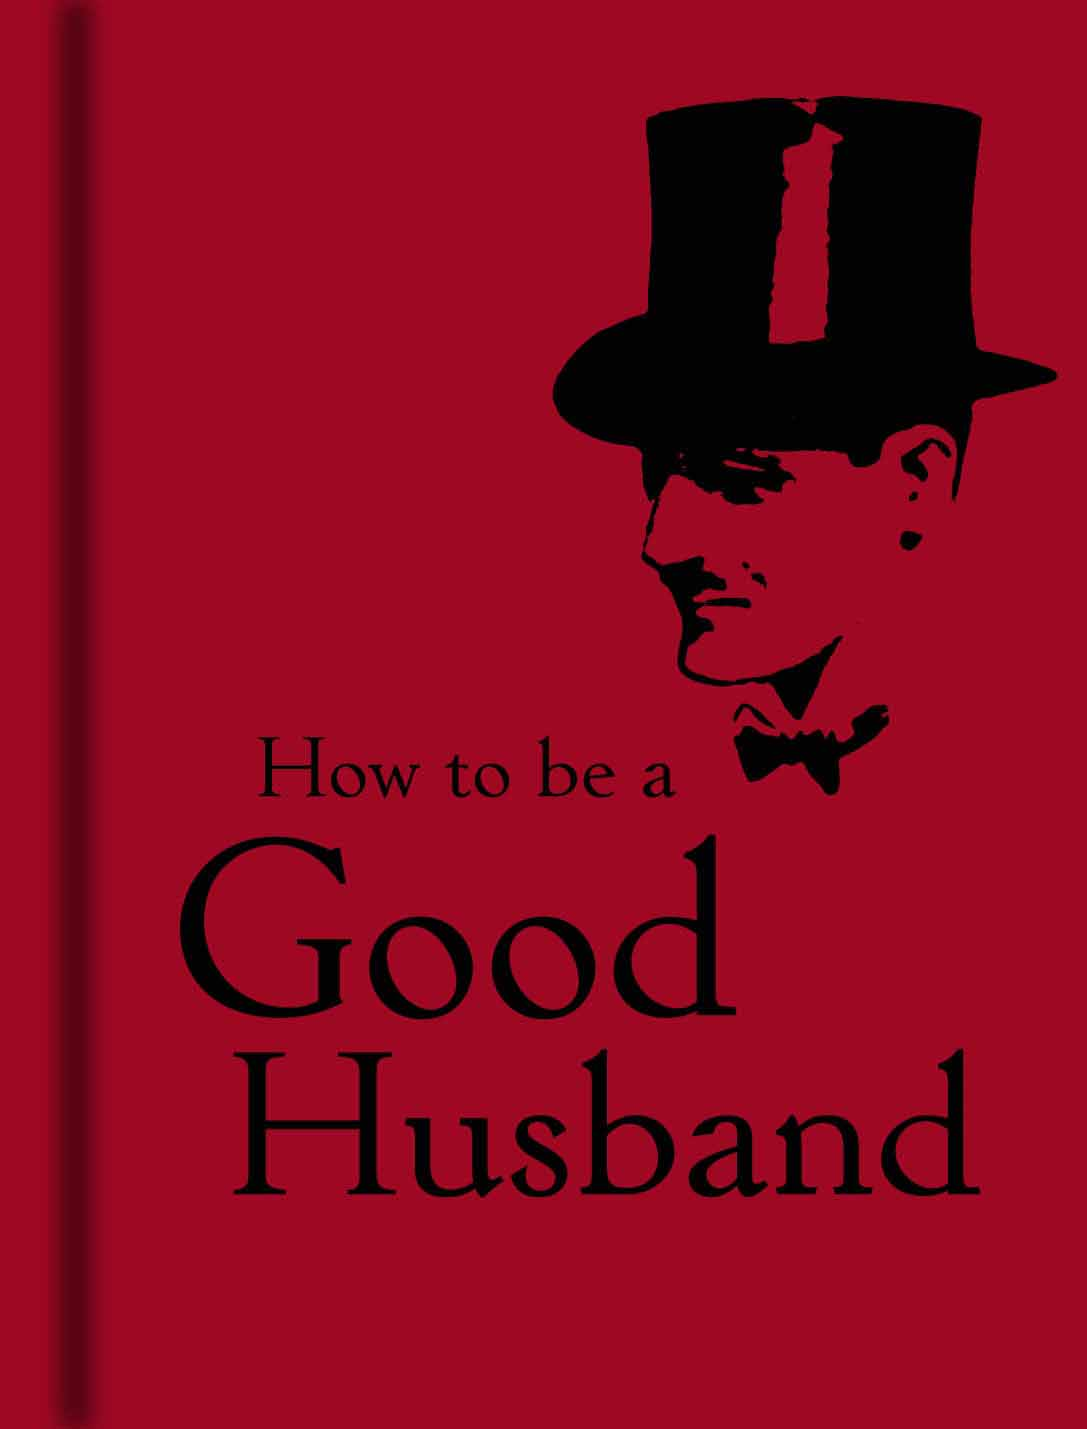 How to be a Good Husband кольца для штор iddis кольца для штор